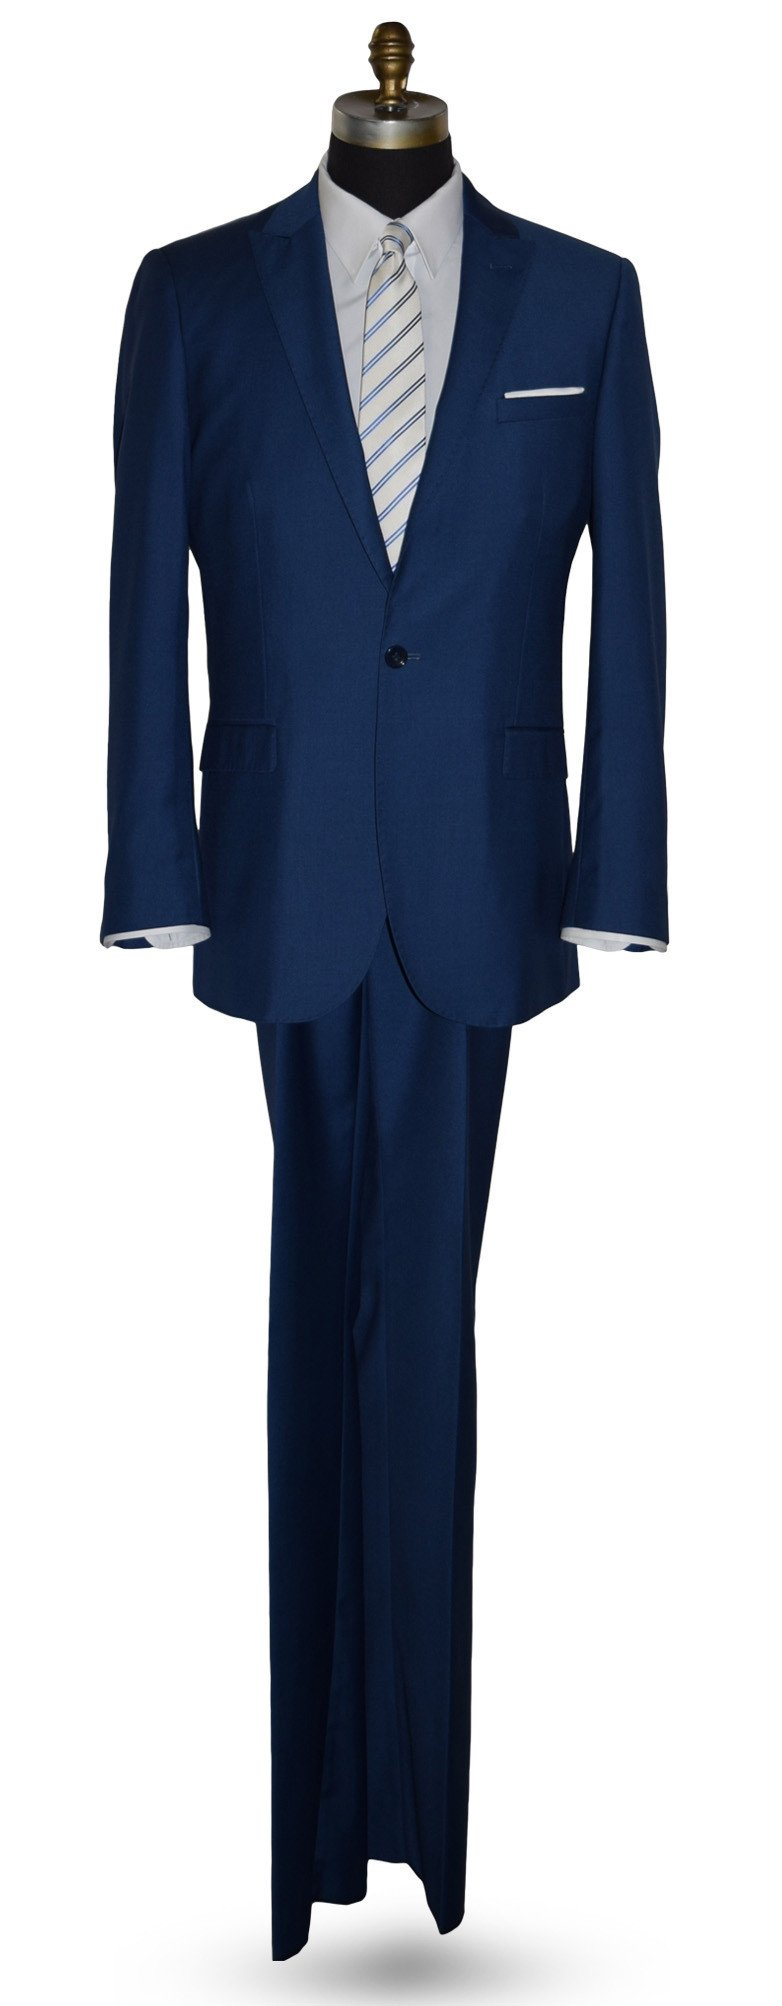 Azure Blue Suit Coat and Pants Set - Ensemble